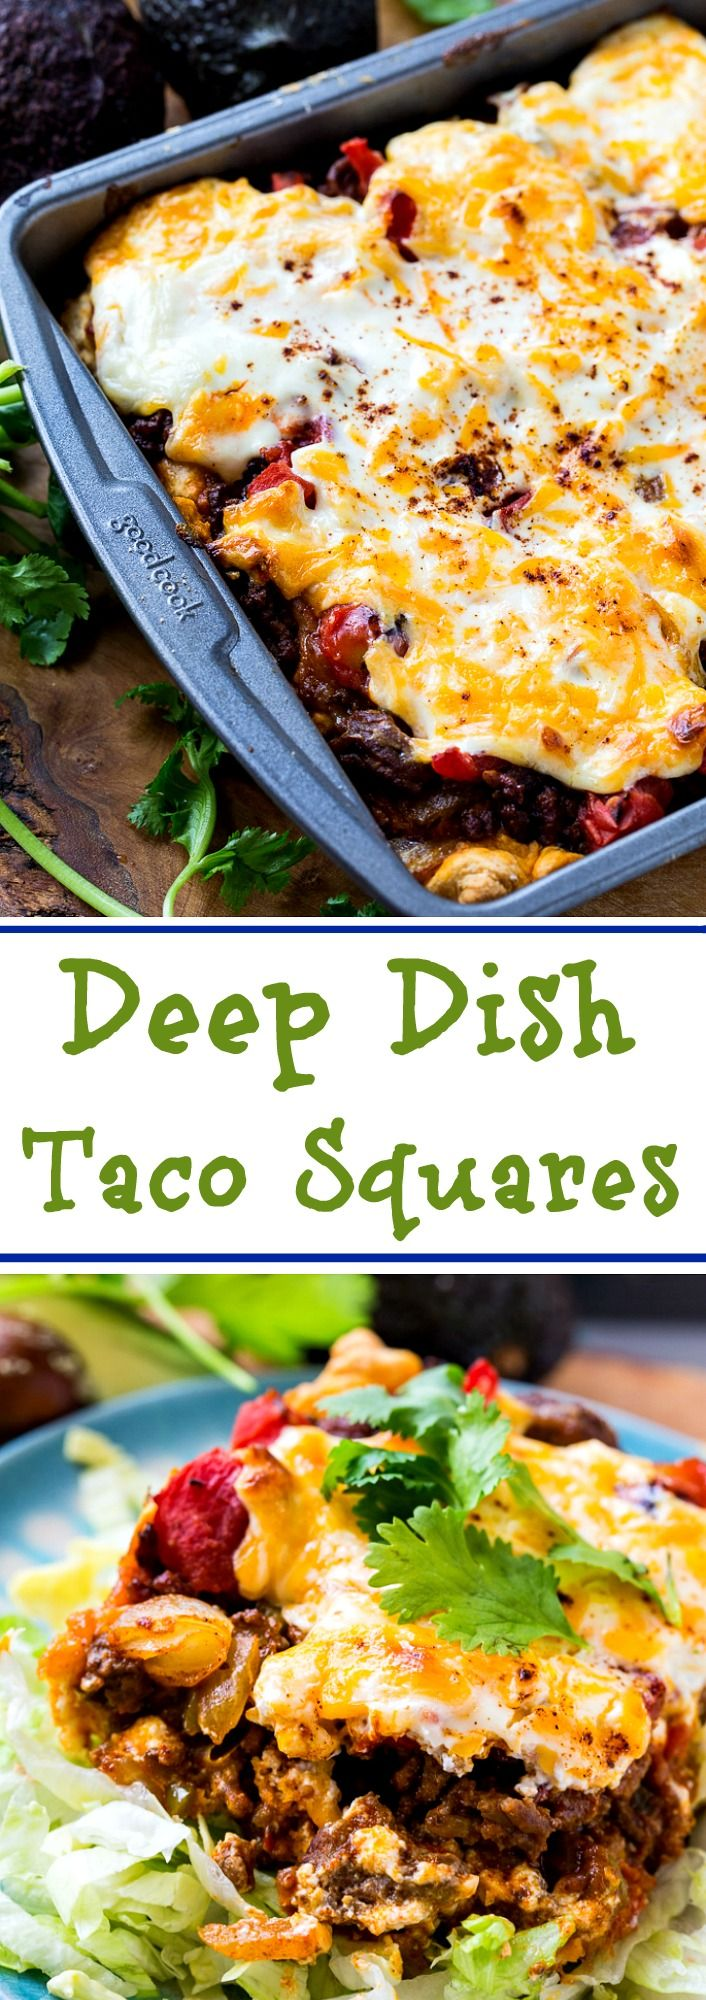 Deep Dish Taco Squares have lots of south of the border flavor.